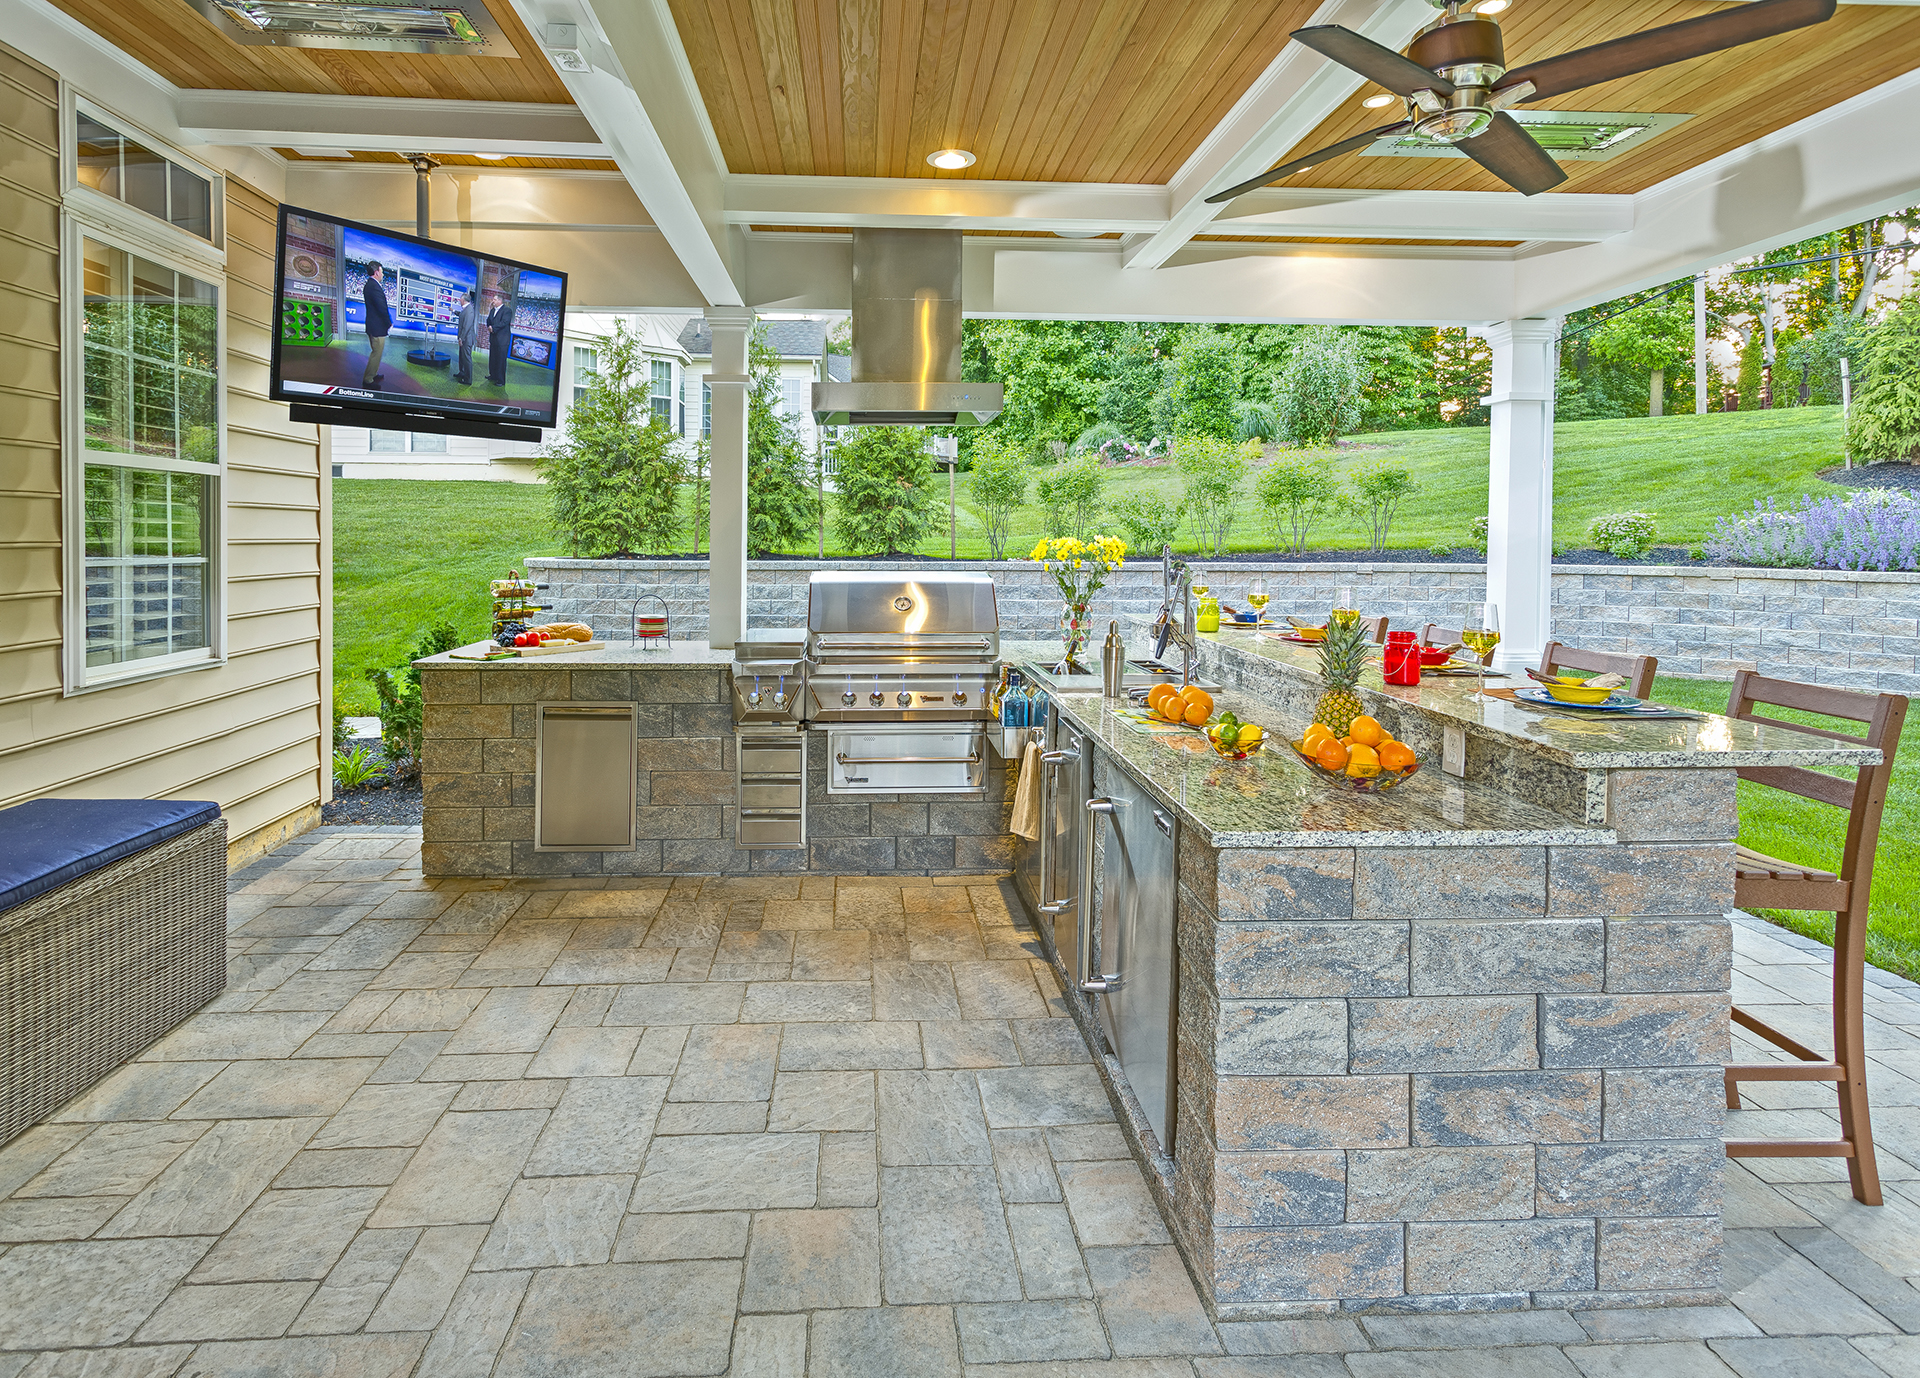 Marcelo - Wilmington, DE 19808 - Outdoor Kitchen by DiSabatino Landscaping & Esposito Masonry